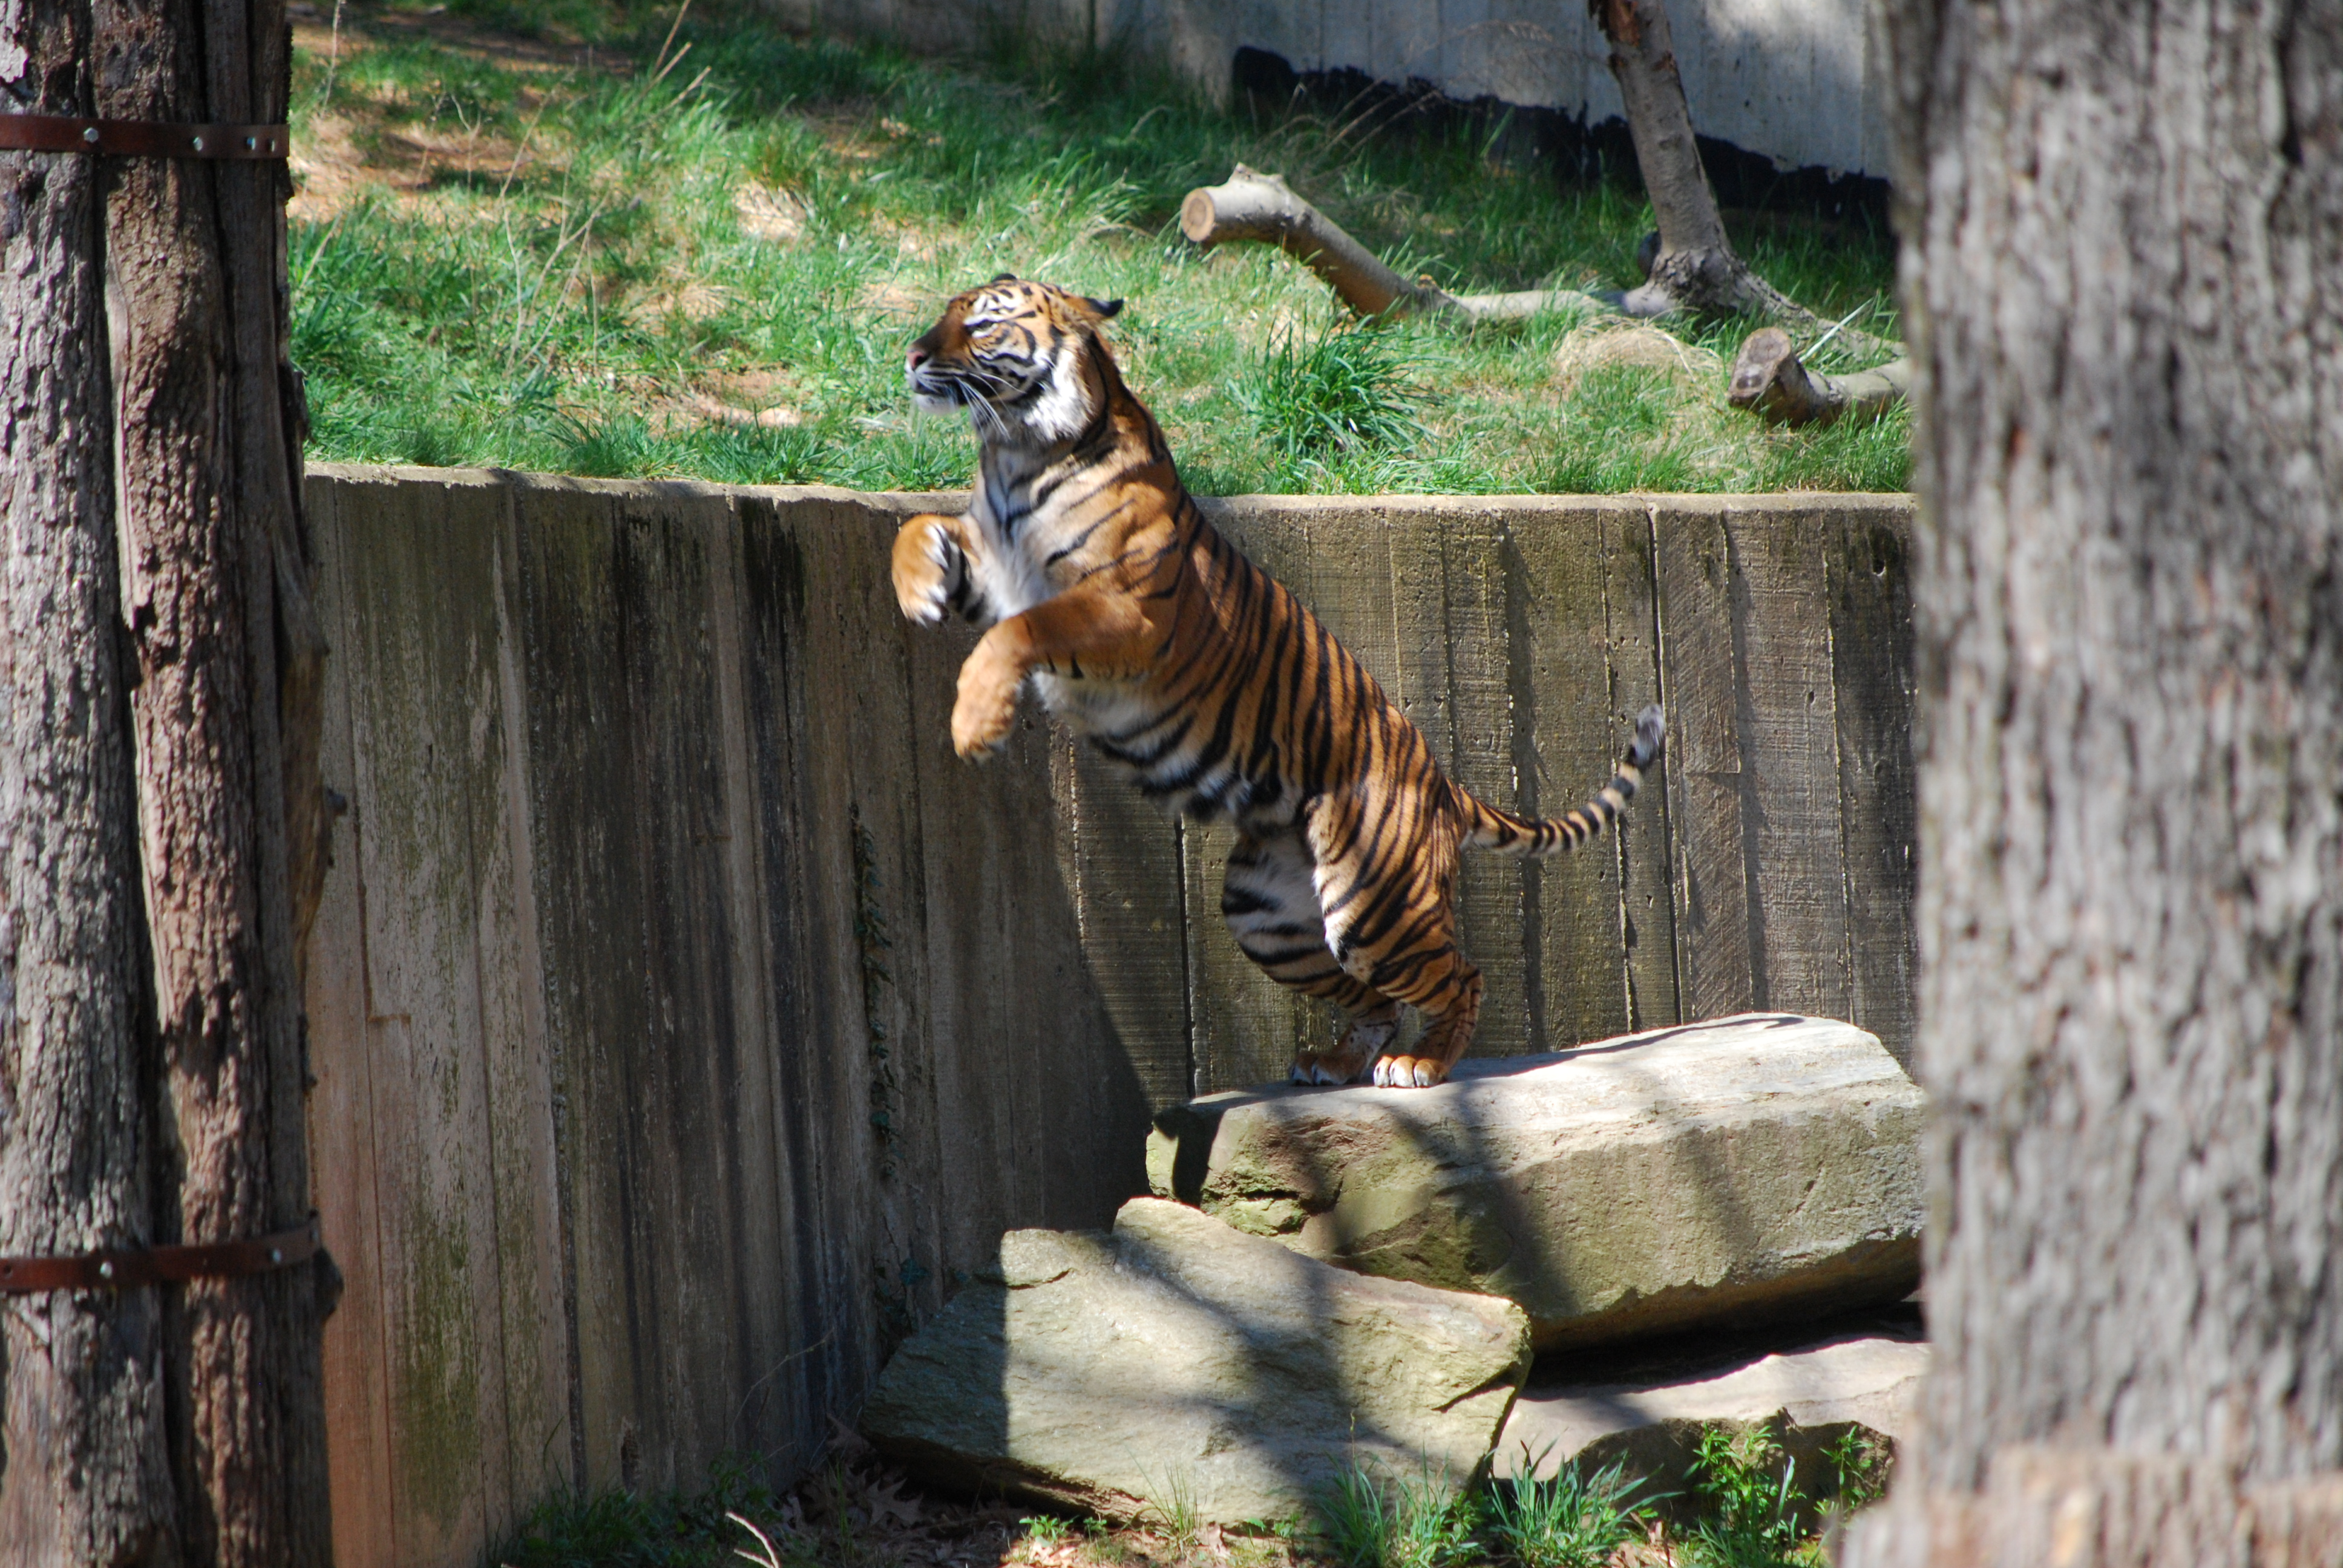 Tiger Leaps for its prey